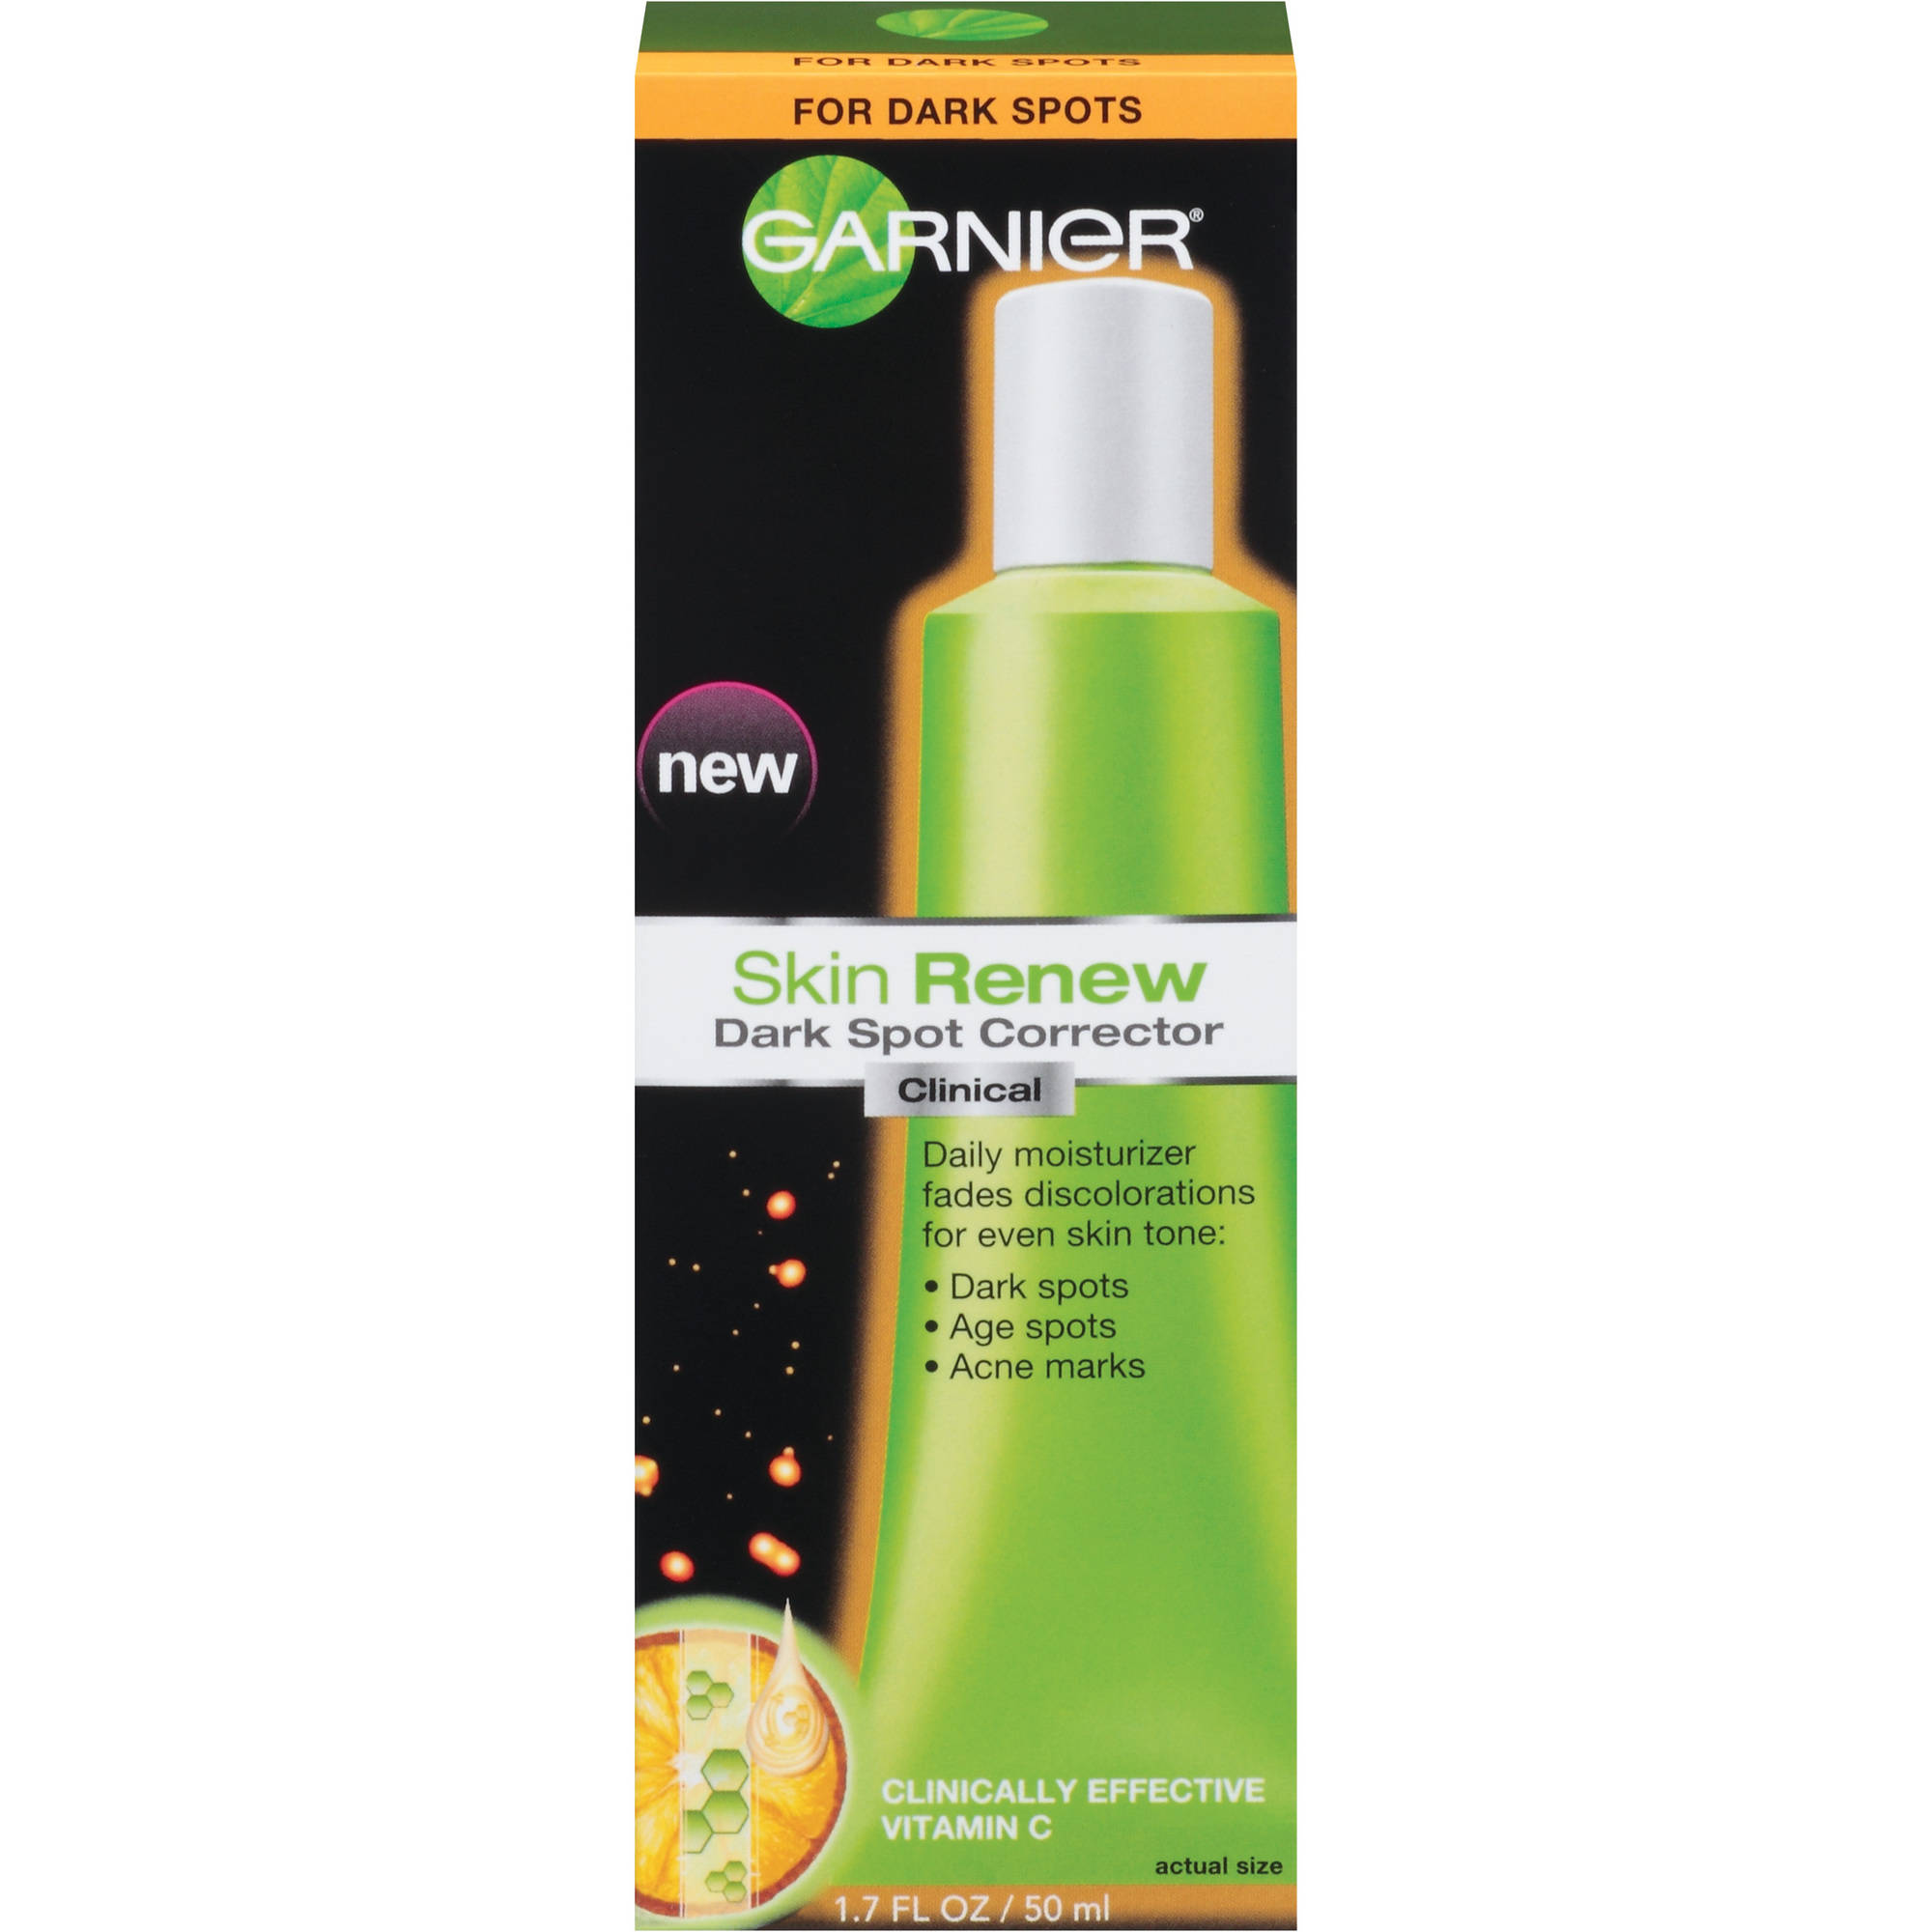 Garnier Skin Renew Clinical Dark Spot Corrector, 1.7 fl oz